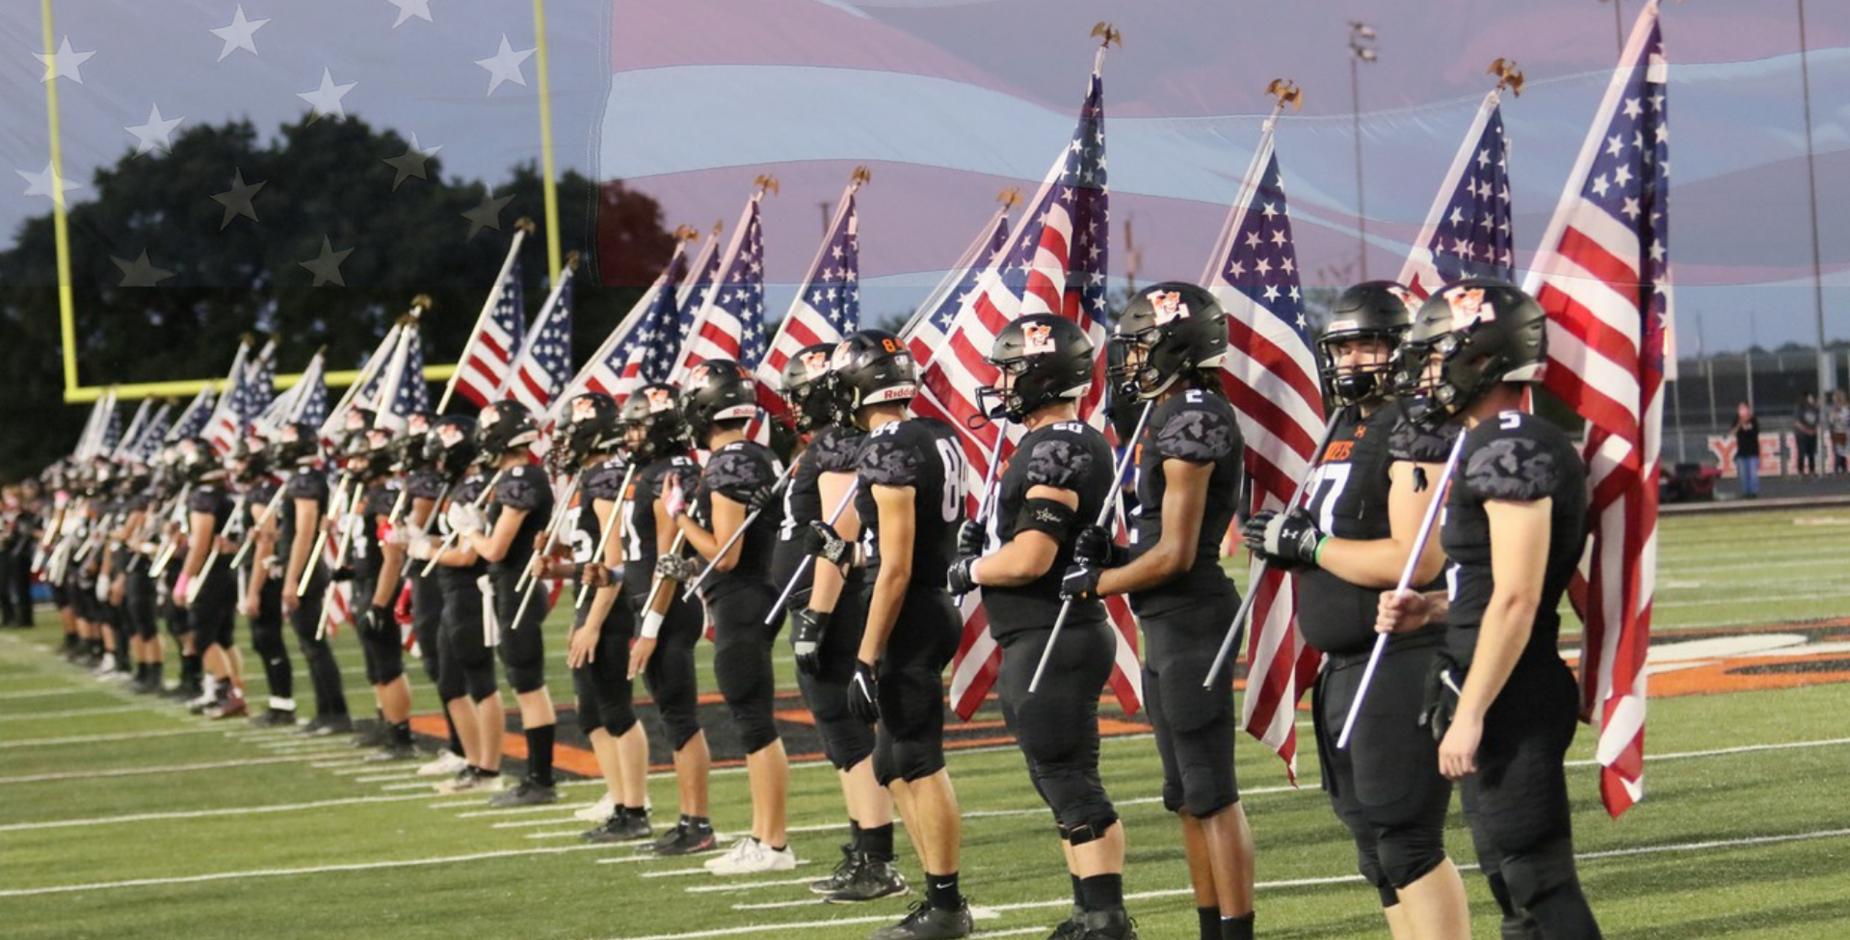 Football Salute to First Responders and Military